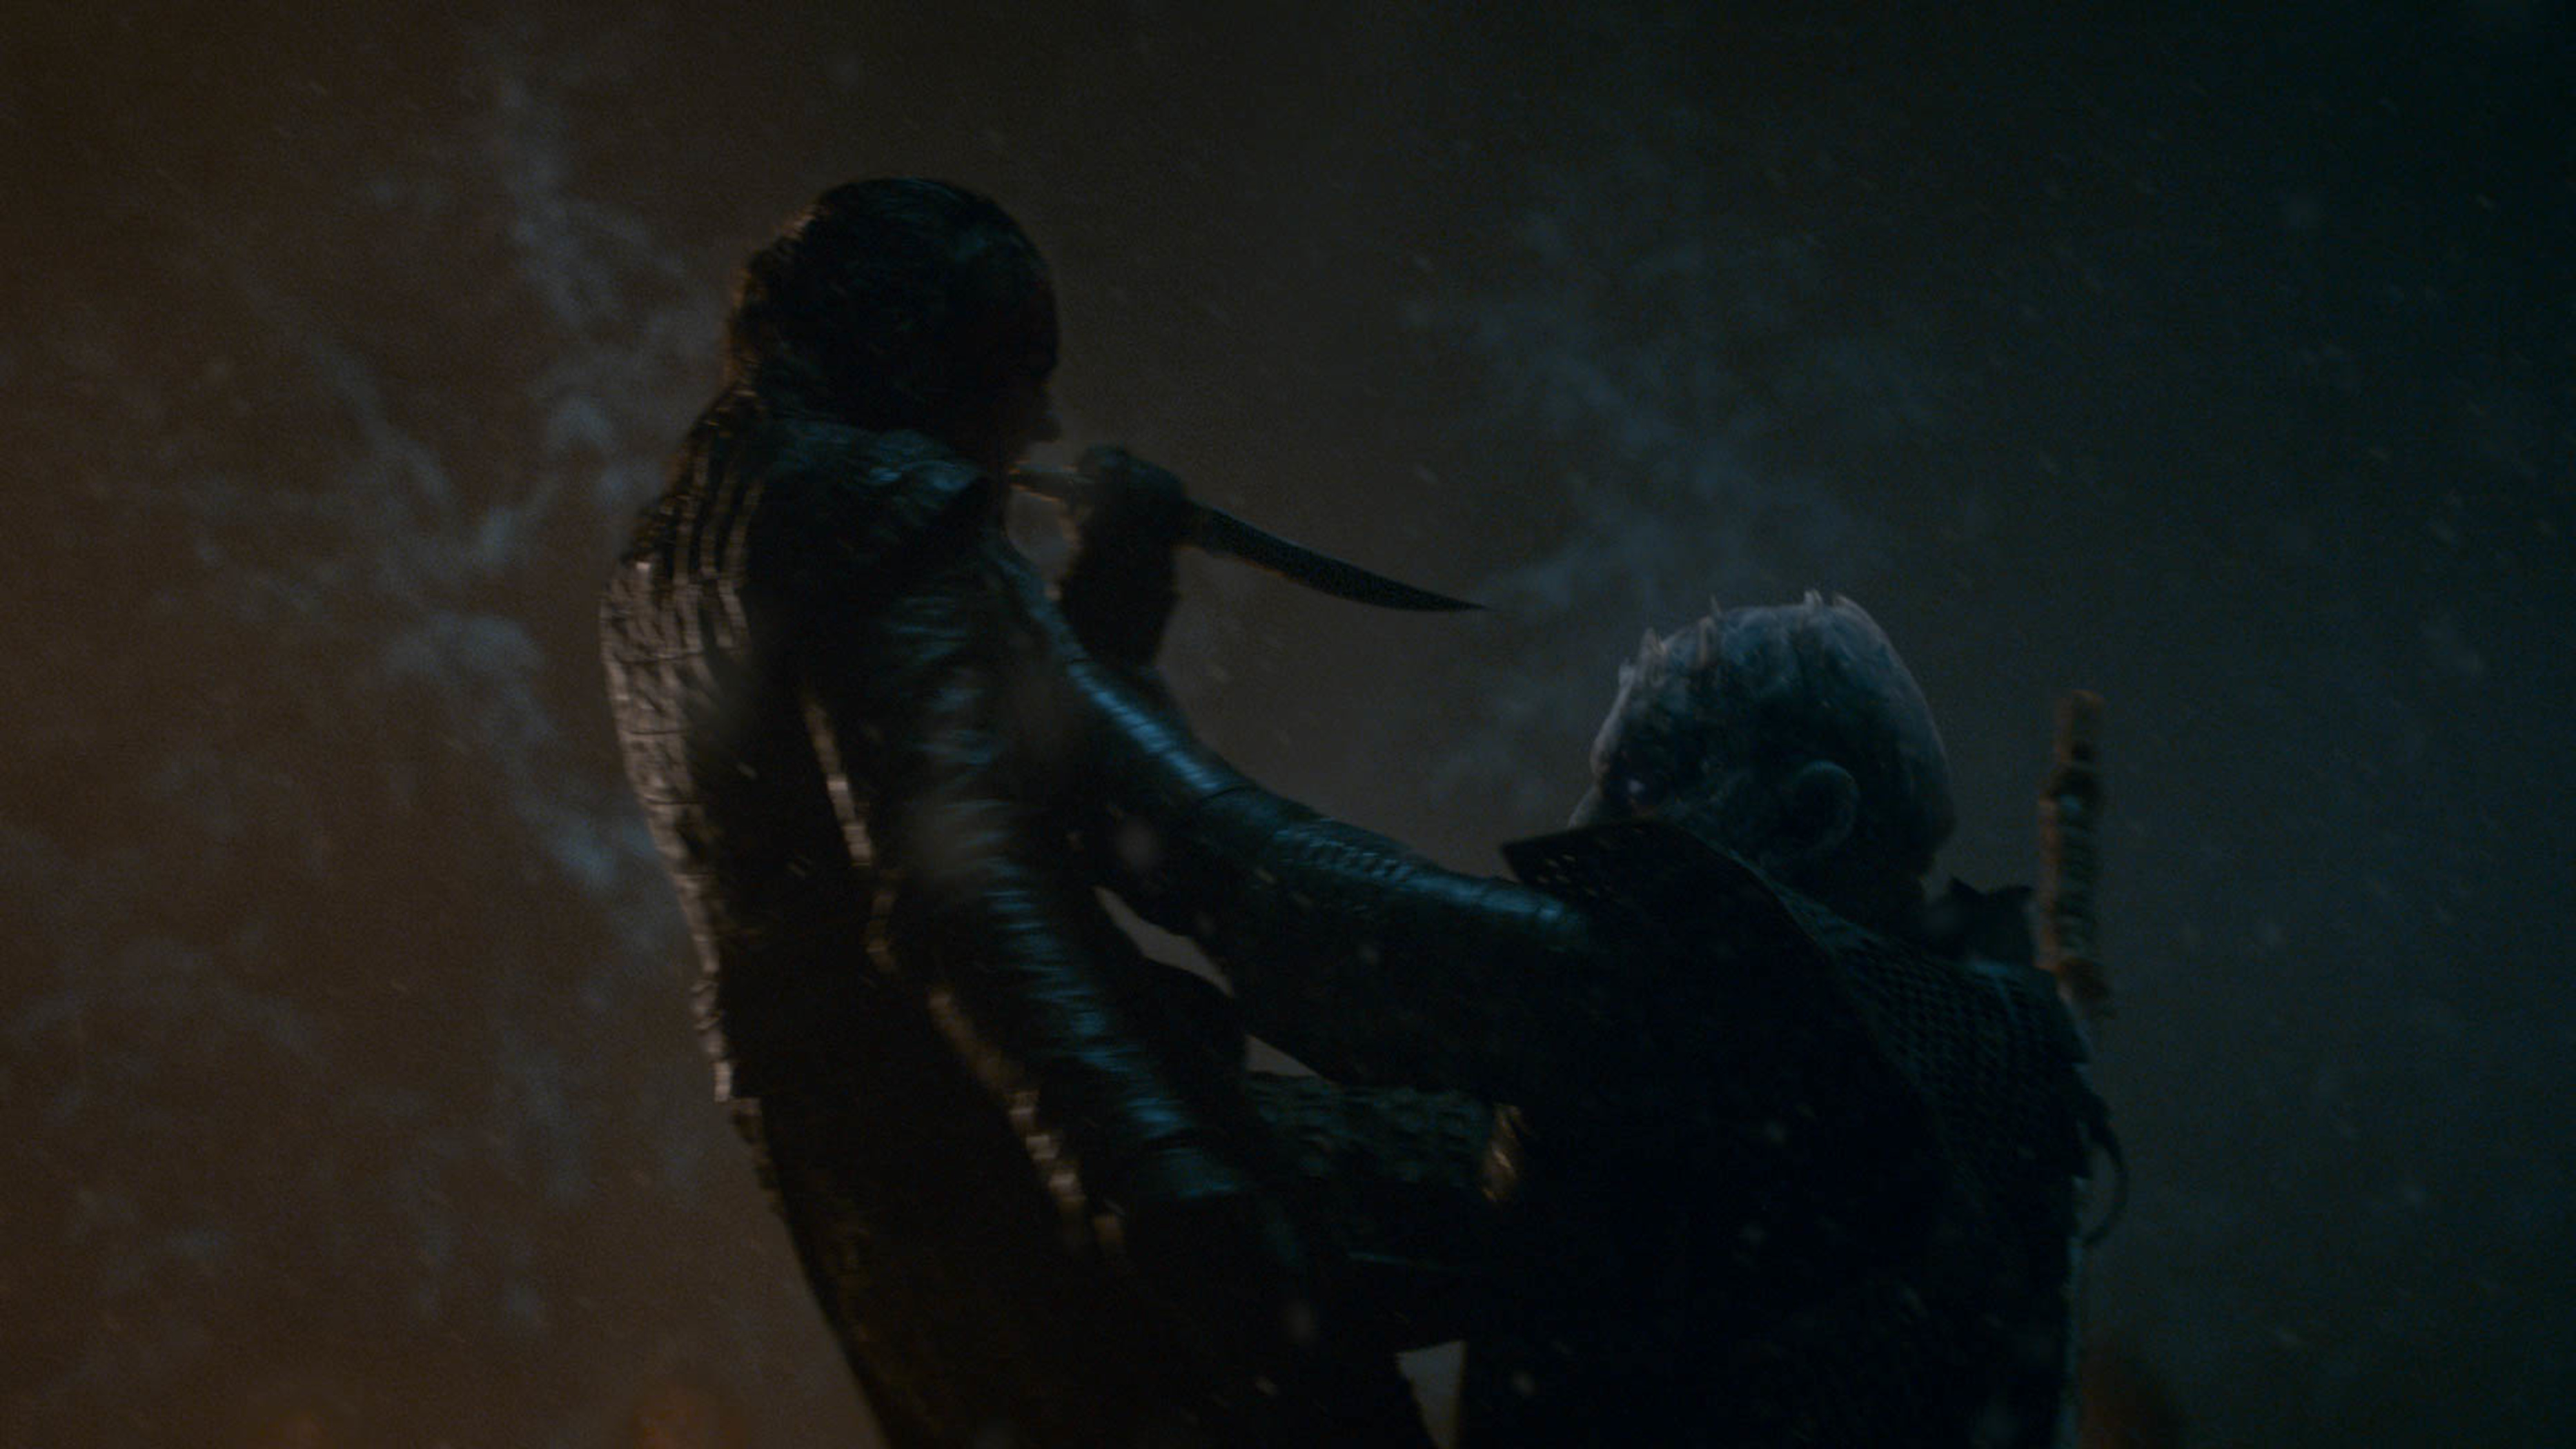 Arya Stark (Maisie Williams) tries to kill the Night King on Game of Thrones.